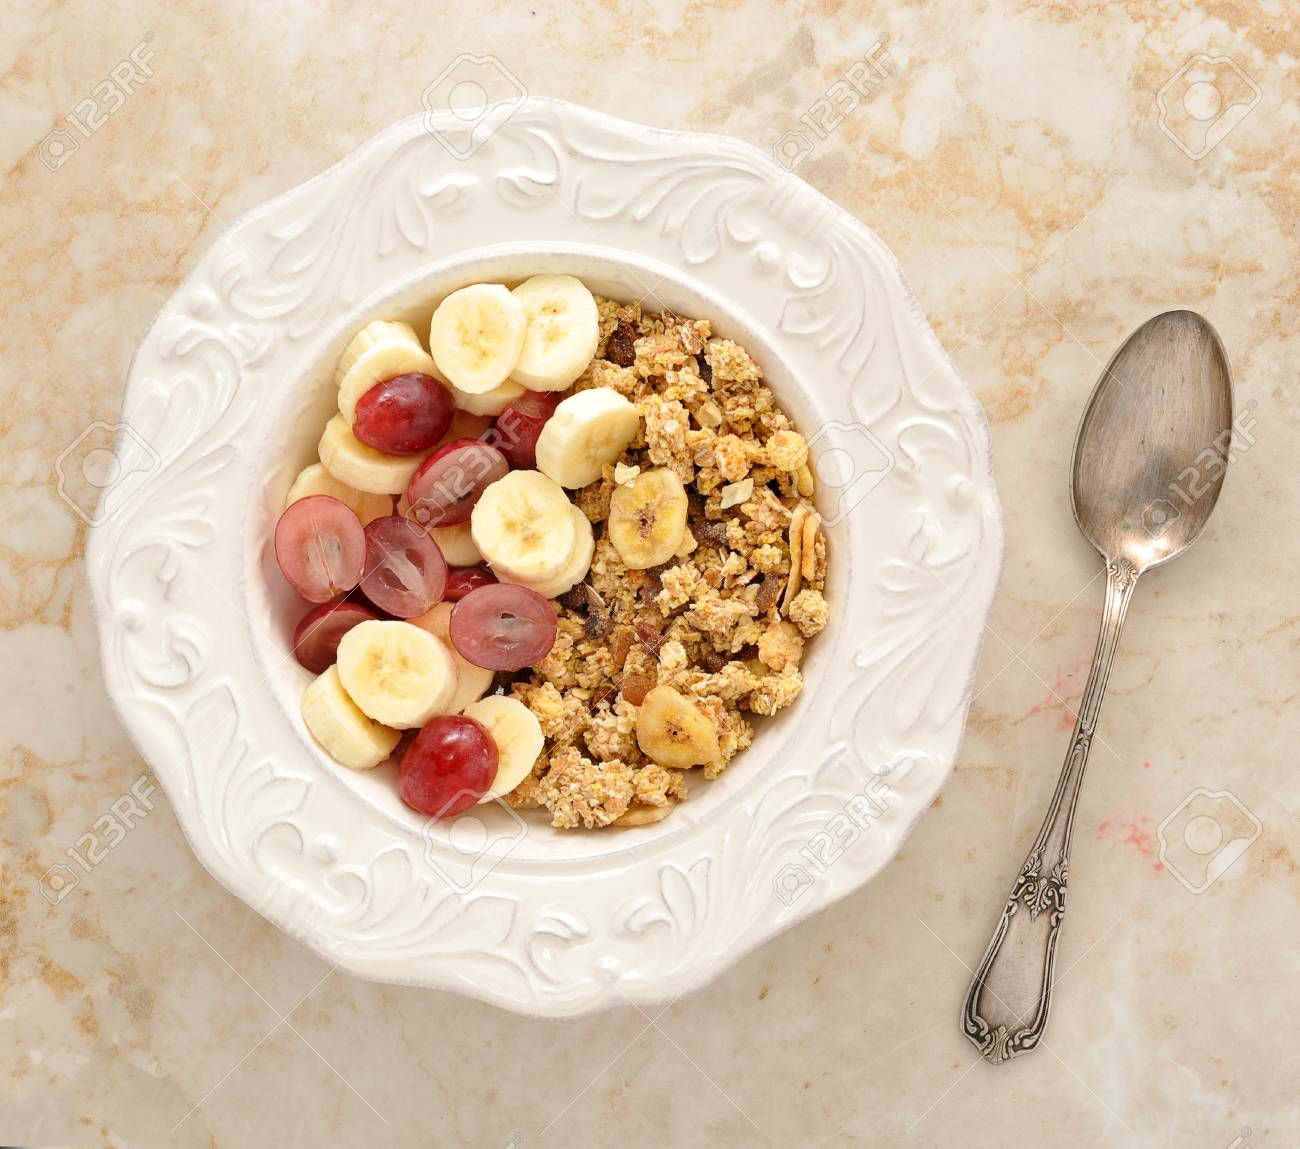 Muesli With Banana Grapes And Milk Healthy Breakfast Top View Stock Photo Picture And Royalty Free Image Image 58303991